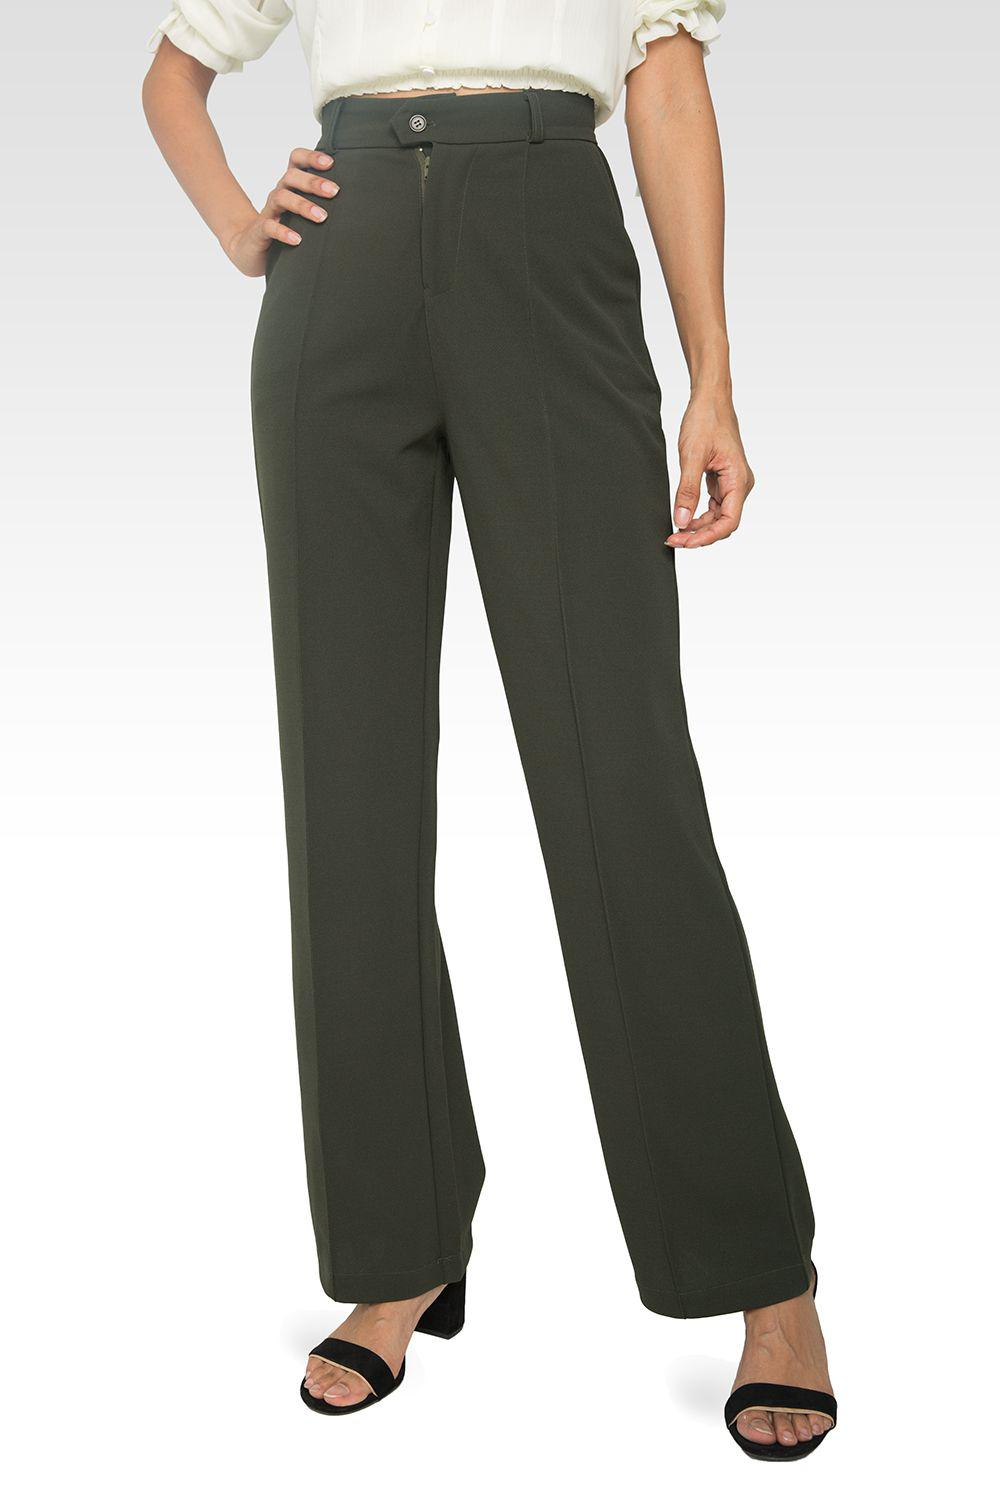 Erica Pintuck Stretch Crepe Wide Leg Trouser - Olive